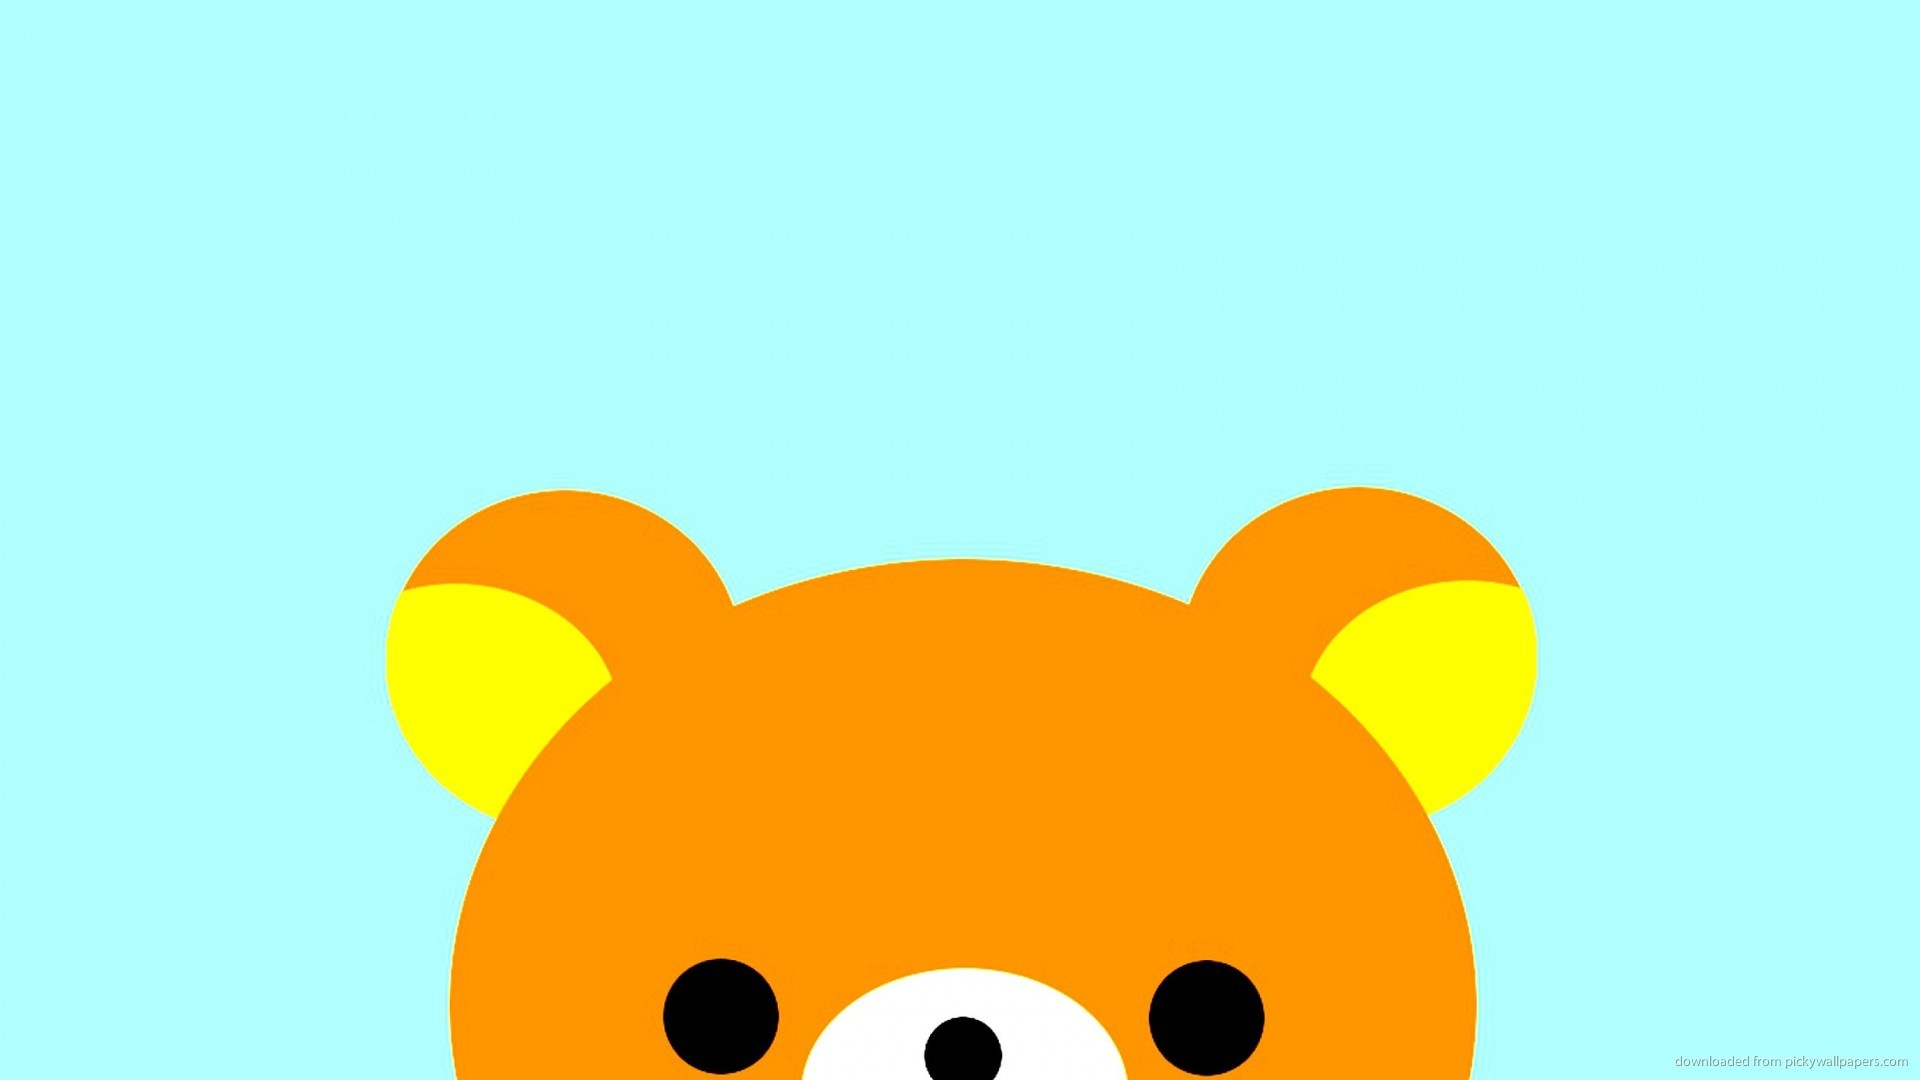 1920x1080 1024x768 Rilakkuma Face wallpaper